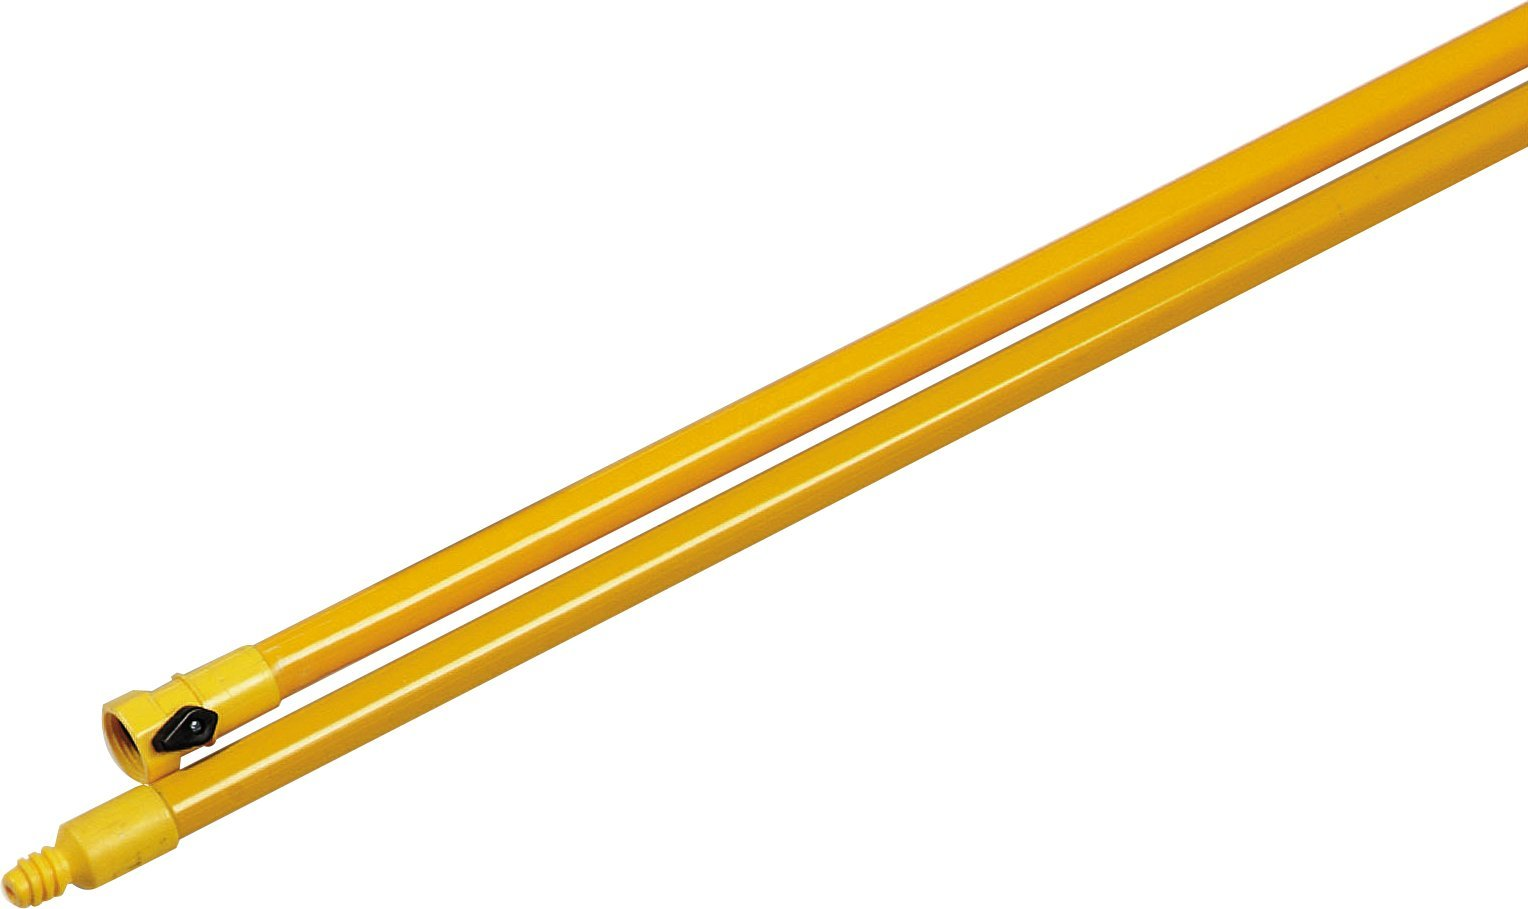 Carlisle 4024104 Fiberglass Flo-Thru Handle with Standard Thread and Shut Off Valve, 7/8'' Dia. x 60'' H, Yellow (Case of 12)